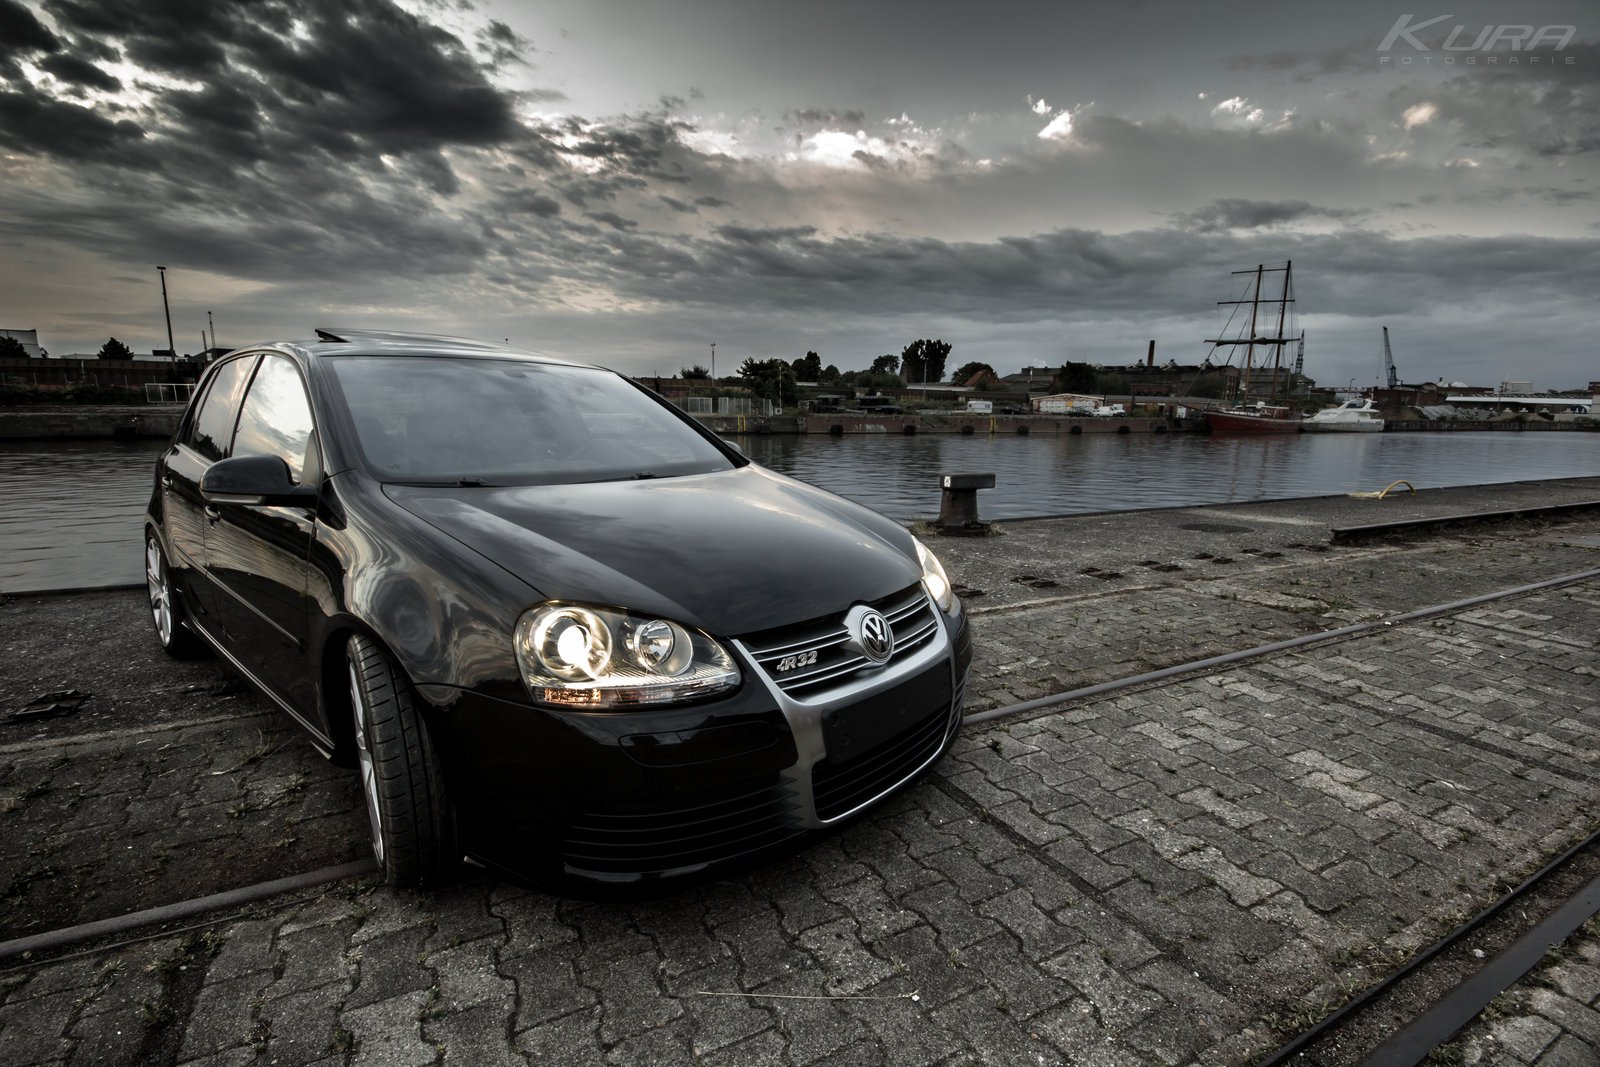 Wbpxdll likewise Golf iv display rieger rrs as well Download as well Vw golf 2 gti 5 1024x683 artykul 77296 19 in addition 2014 Volkswagen Polo Wrc Revealed auto Power Girl. on vw gti wallpaper